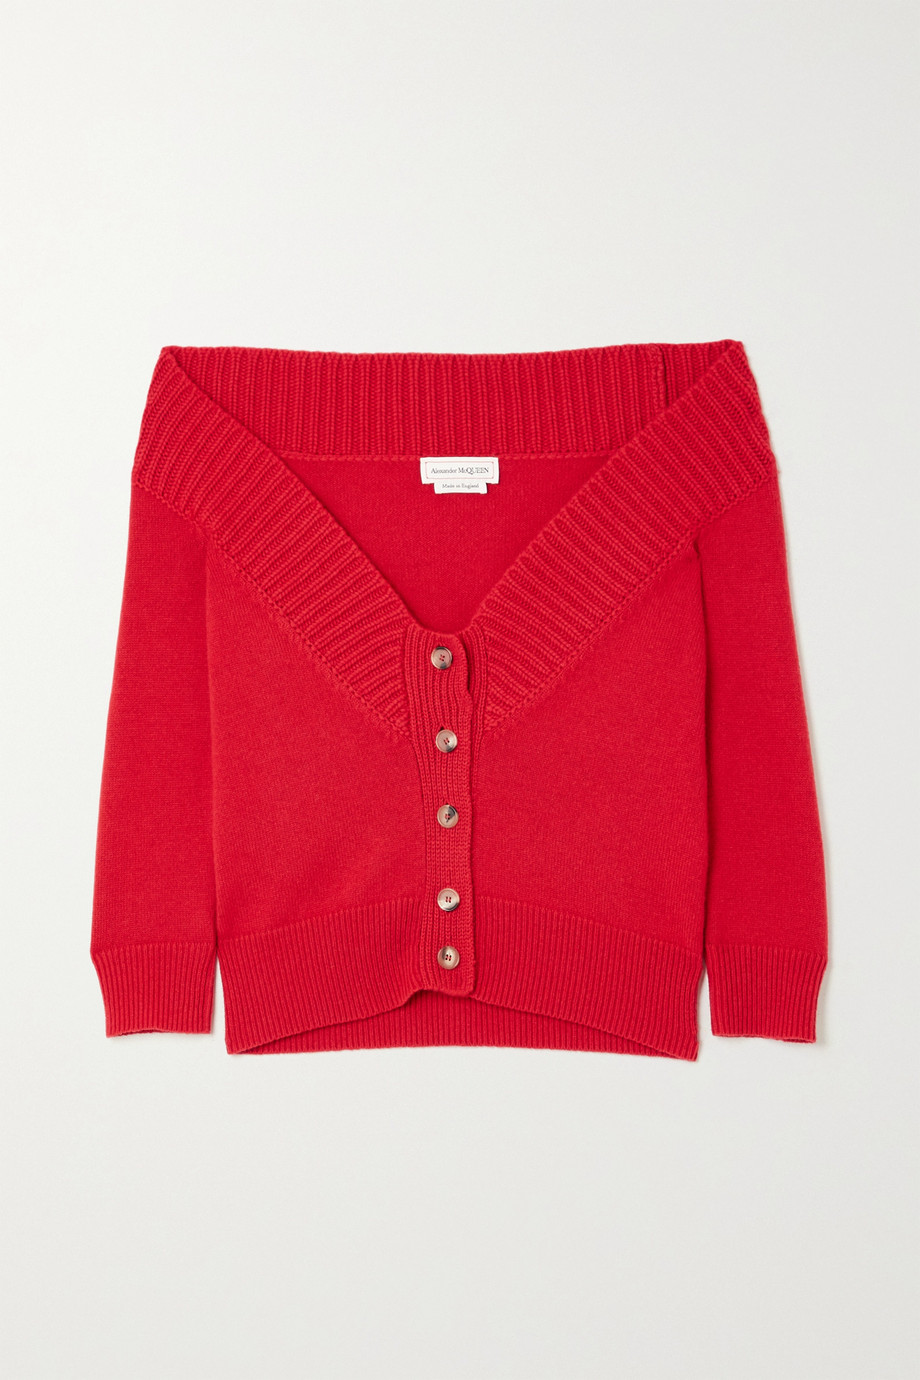 ALEXANDER MCQUEEN Off-the-shoulder cashmere cardigan